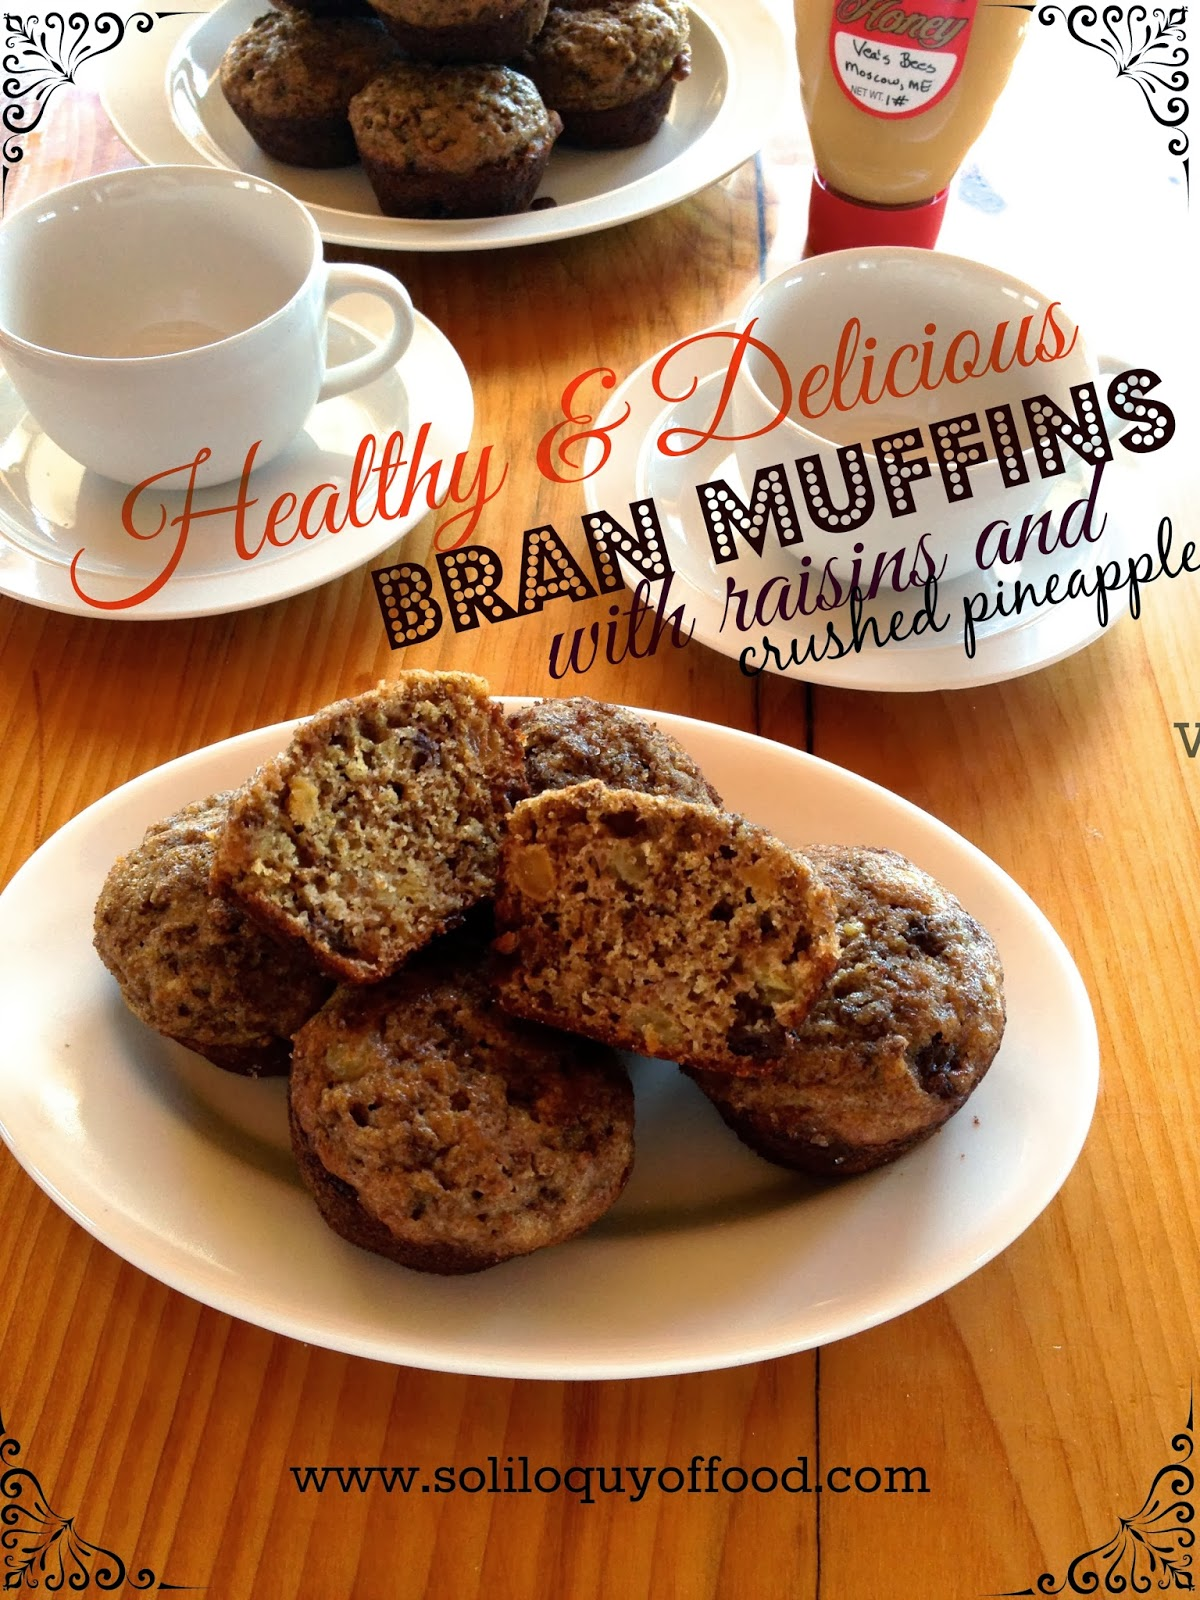 Healthy & Delicious Bran Muffins With Raisins & Crushed Pineapple http://www.soliloquyoffood.com